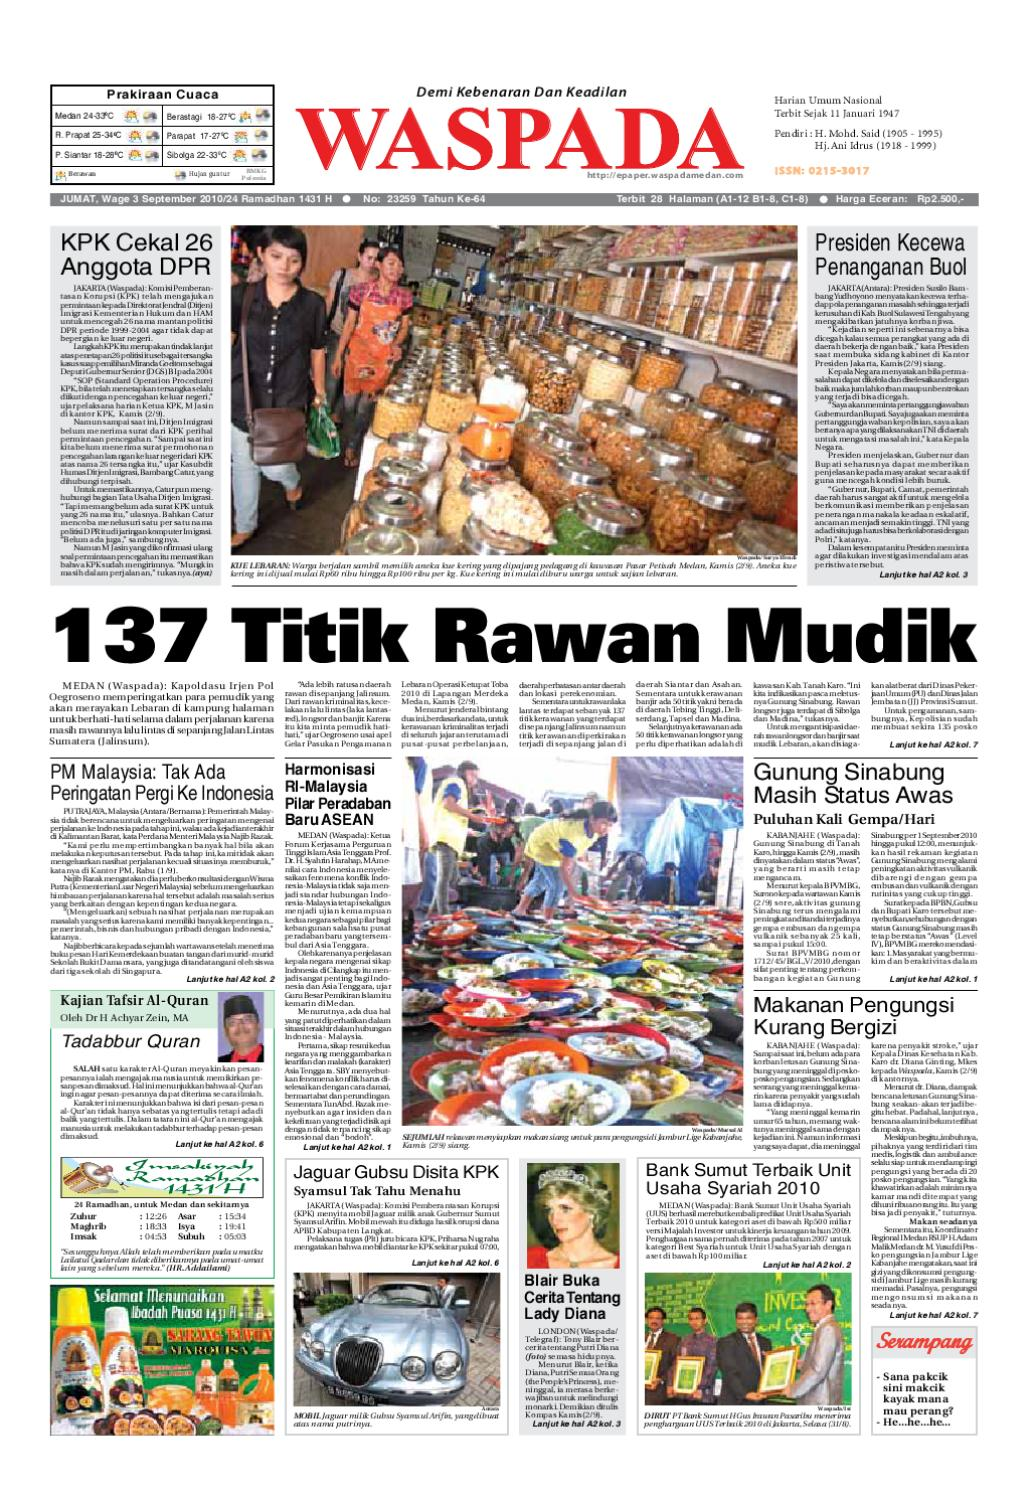 Waspada Jumat 3 September 2010 By Harian Waspada Issuu